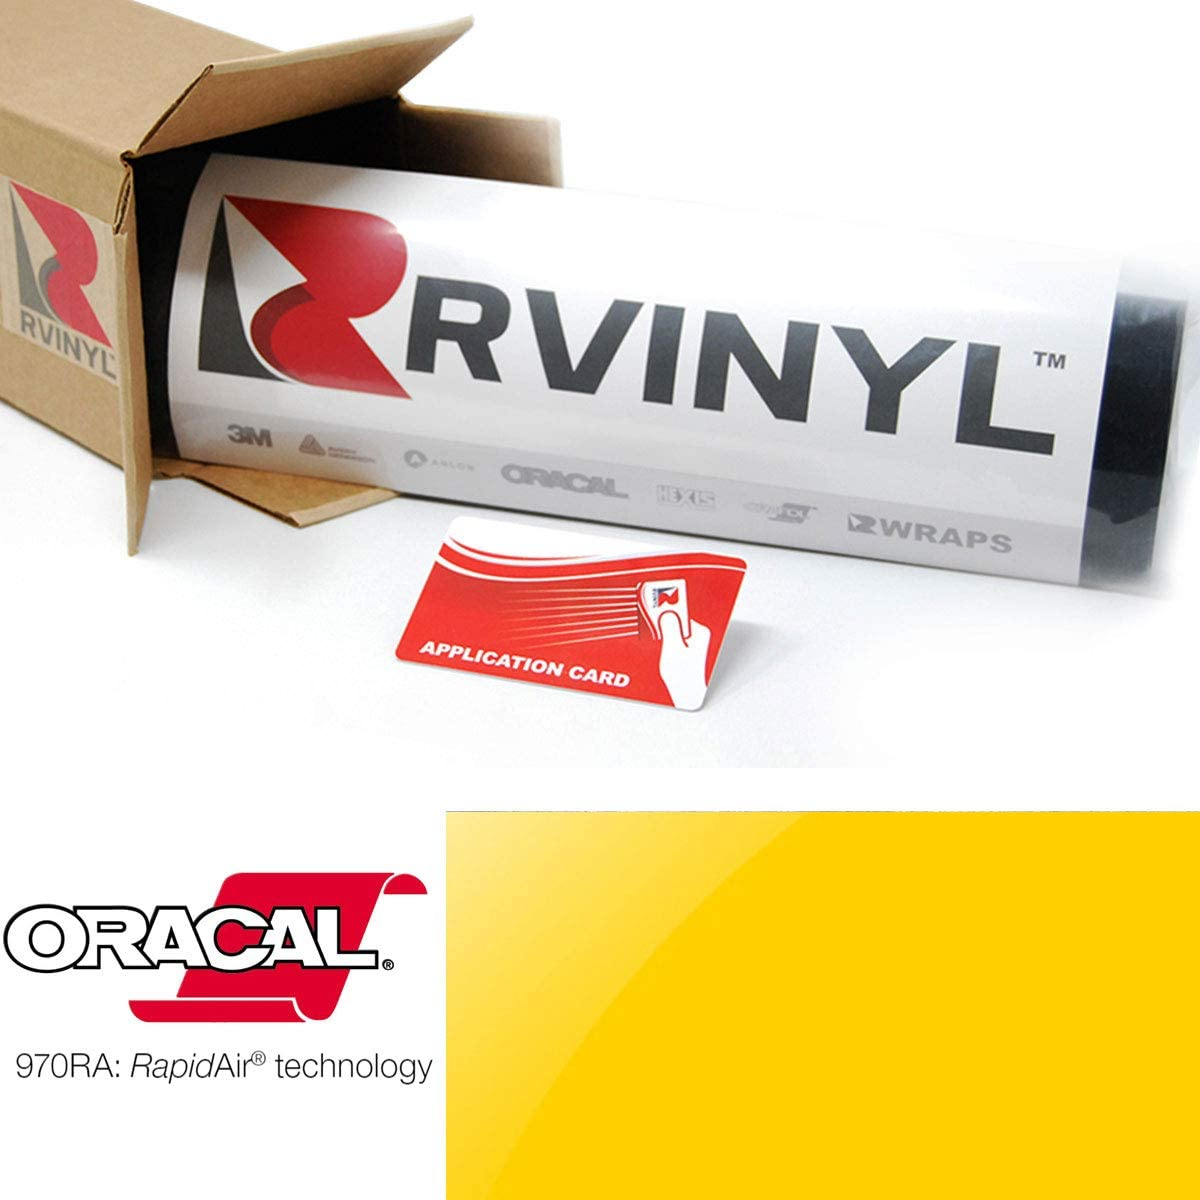 1ft x 5ft w//App Card ORACAL 970RA Gloss Traffic Yellow 216 Wrapping Cast Film Vehicle Car Wrap Vinyl Sheet Roll